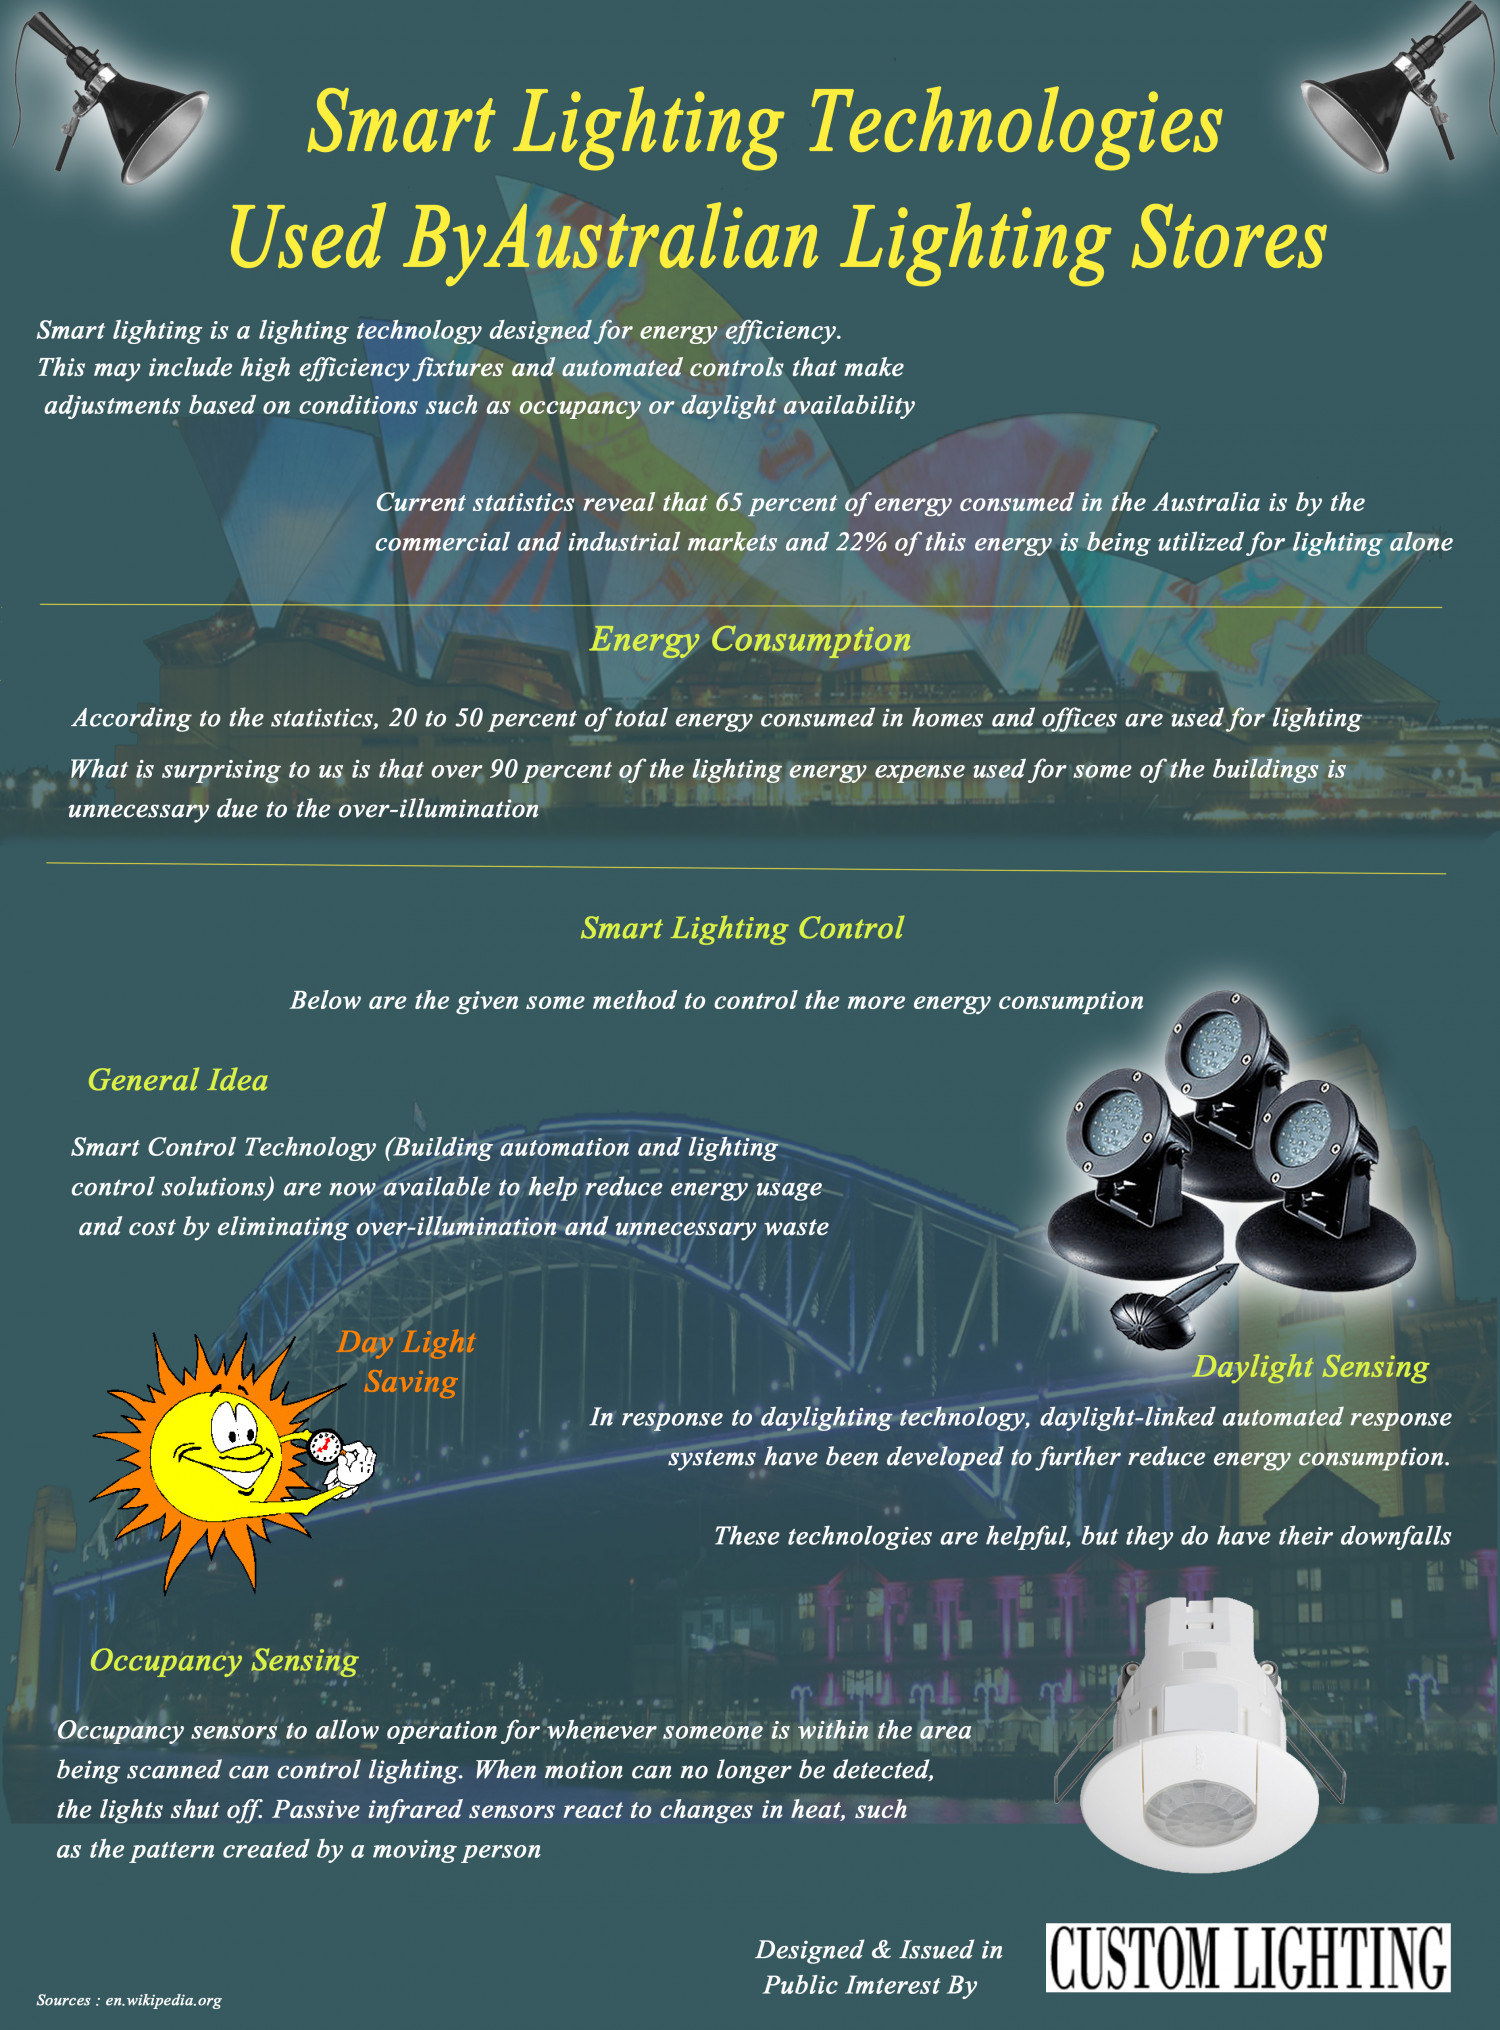 Smart Lighting Technologies Used By Australian Lighting Stores Infographic.  Embed This Visual